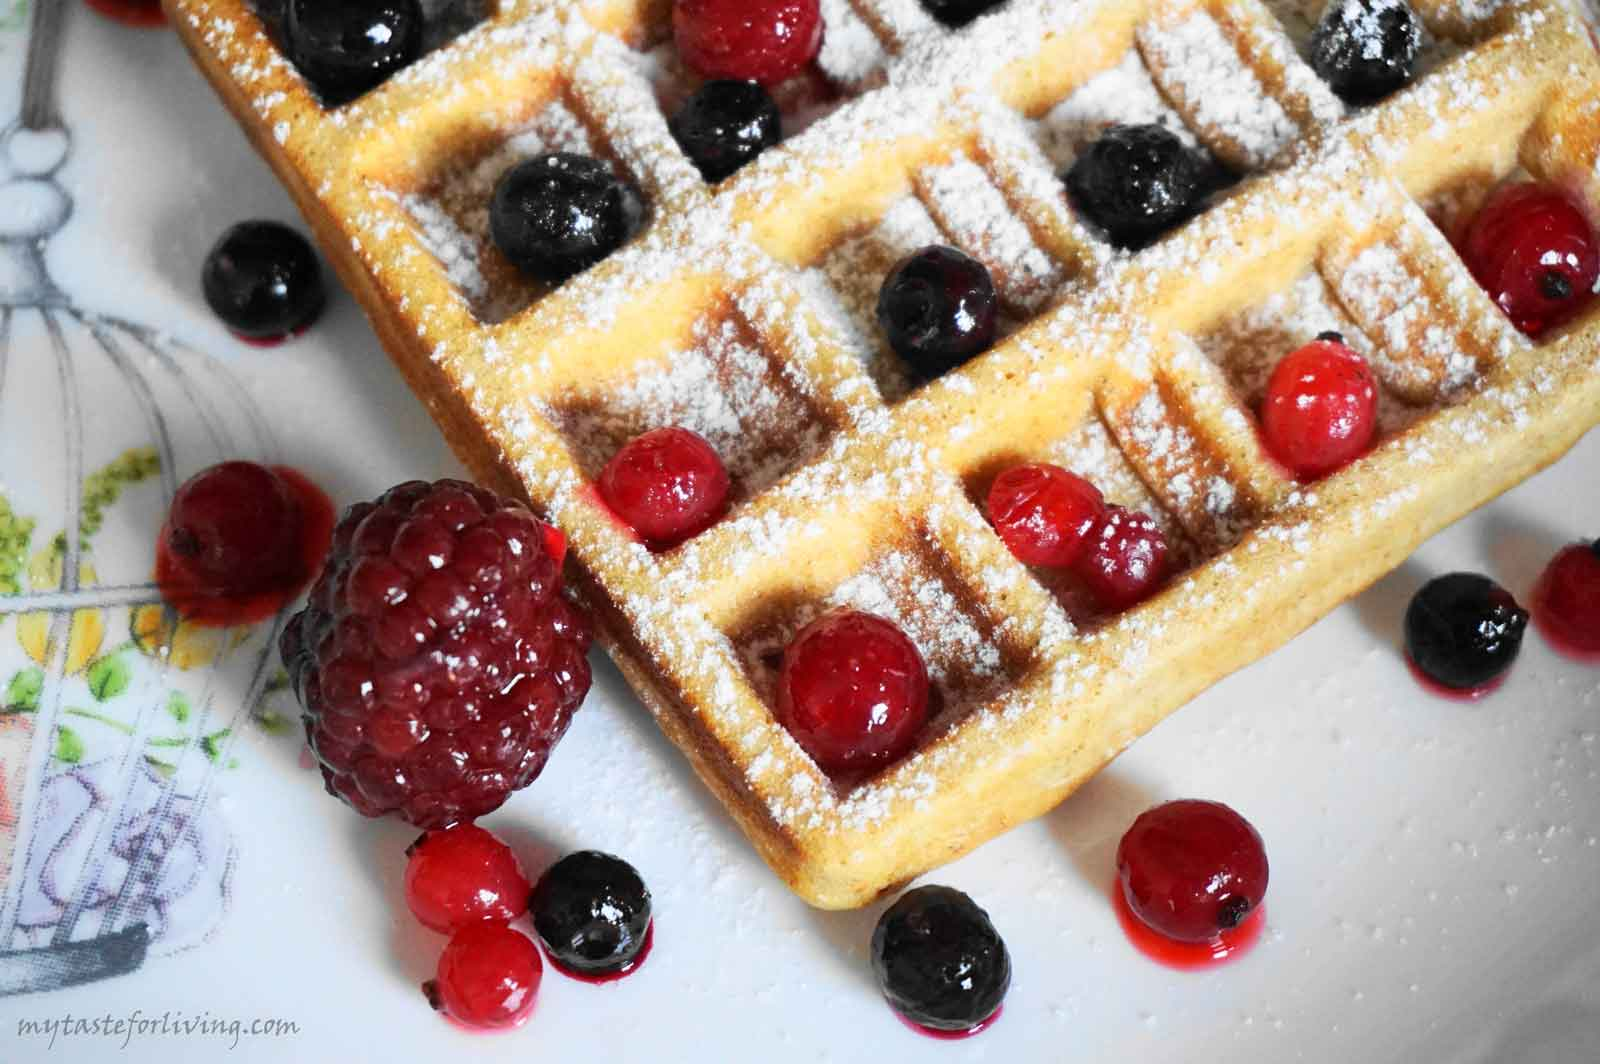 I offer you a recipe for waffles with whole wheat flour, which are very appetizing and delicious, and can be prepared very quickly.